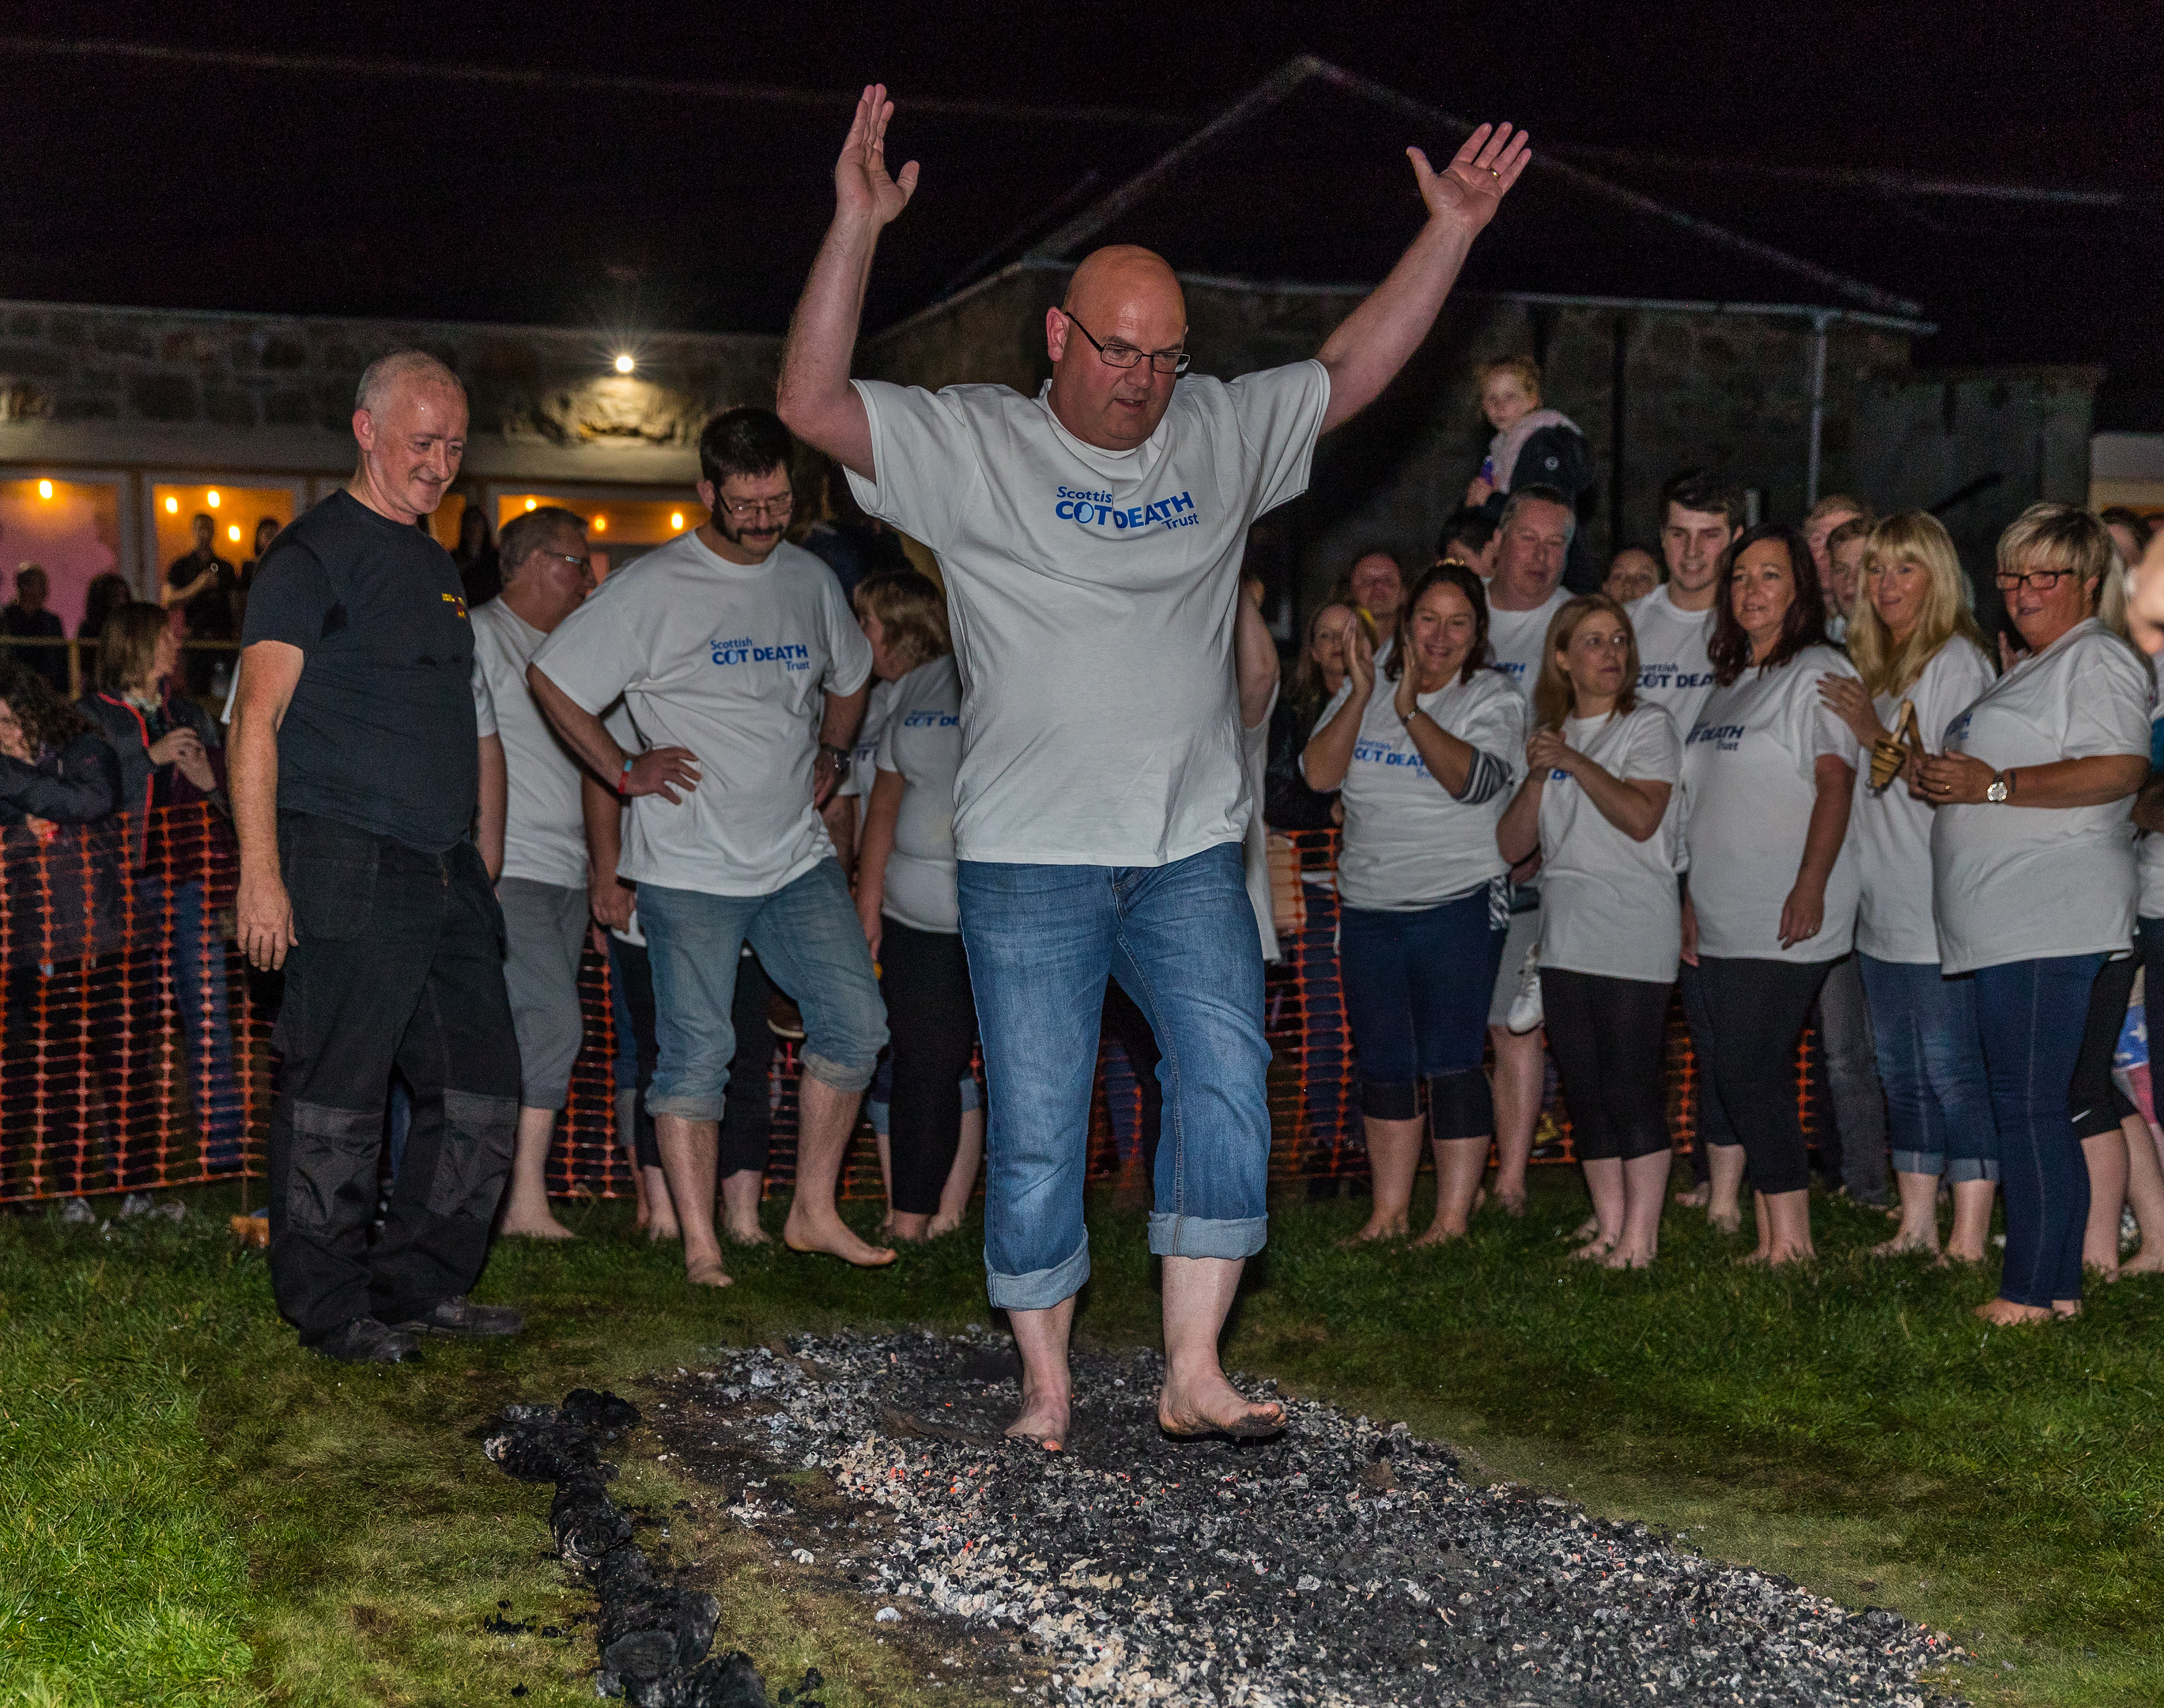 Residents walk the fire at Lossimouth in aid of Scottish Cot Death Trust.